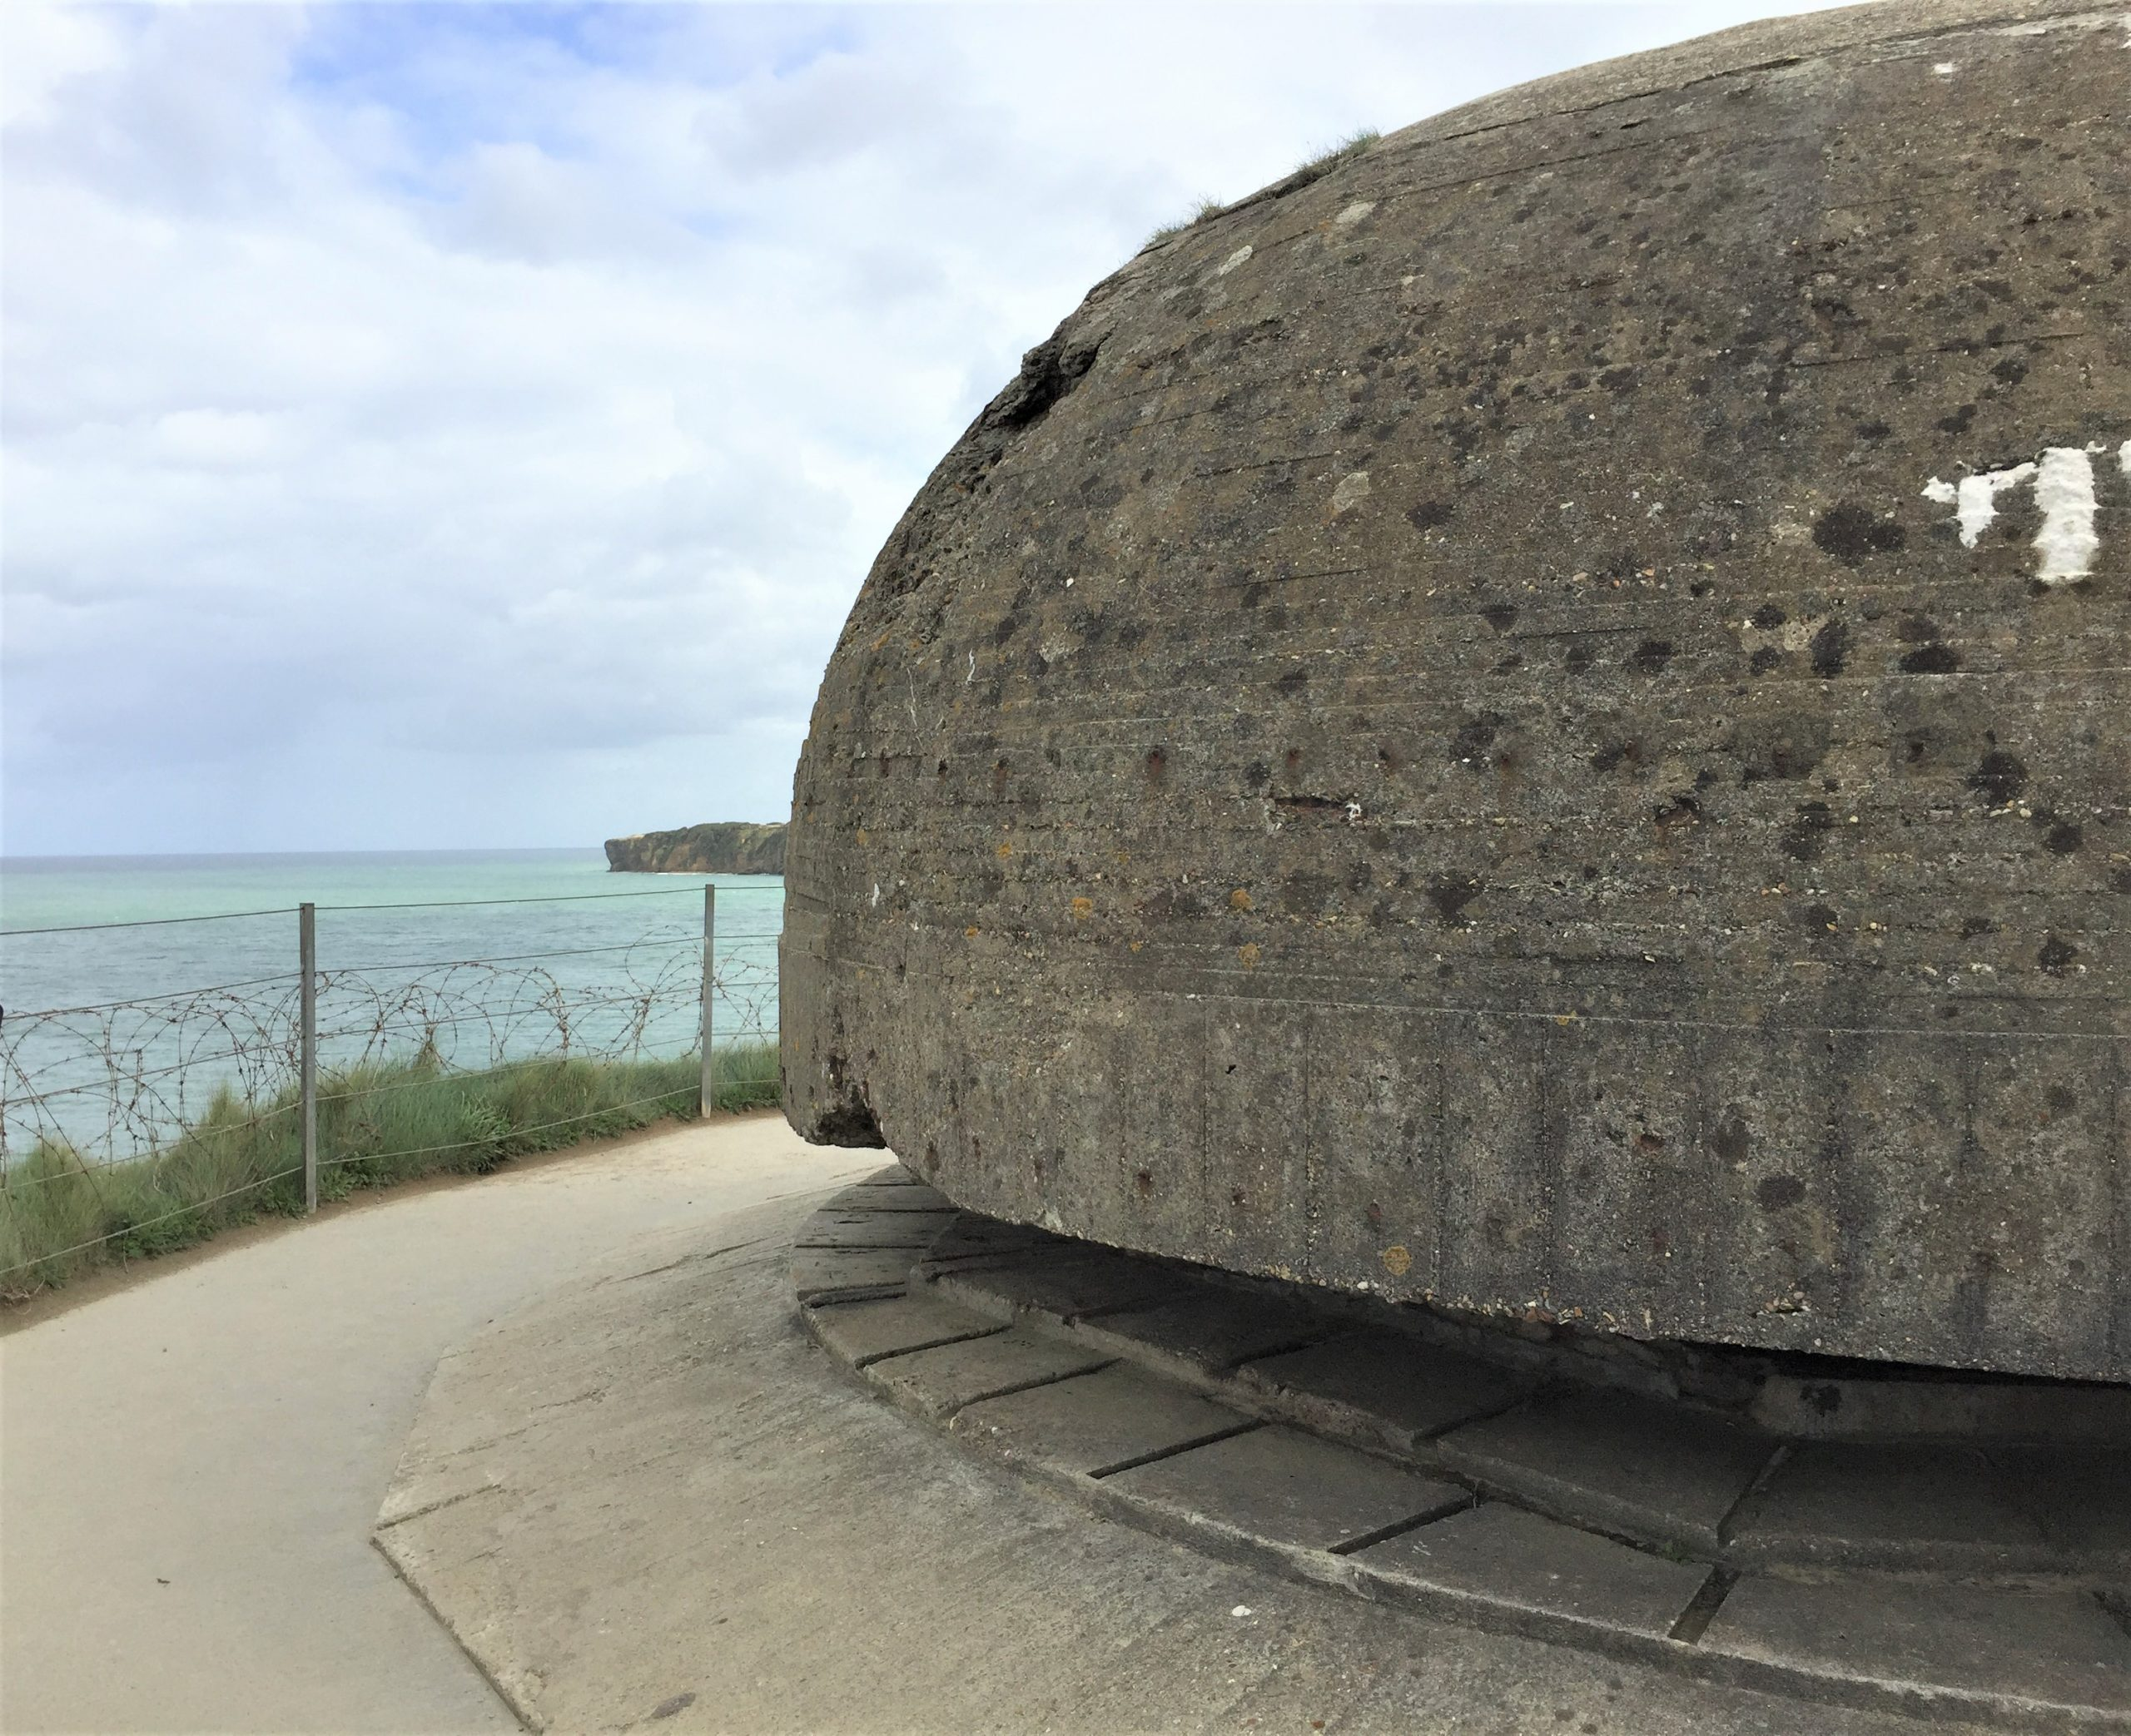 Observation post at tip of Pointe du Hoc (Photo: Sarah Sundin, September 2017)